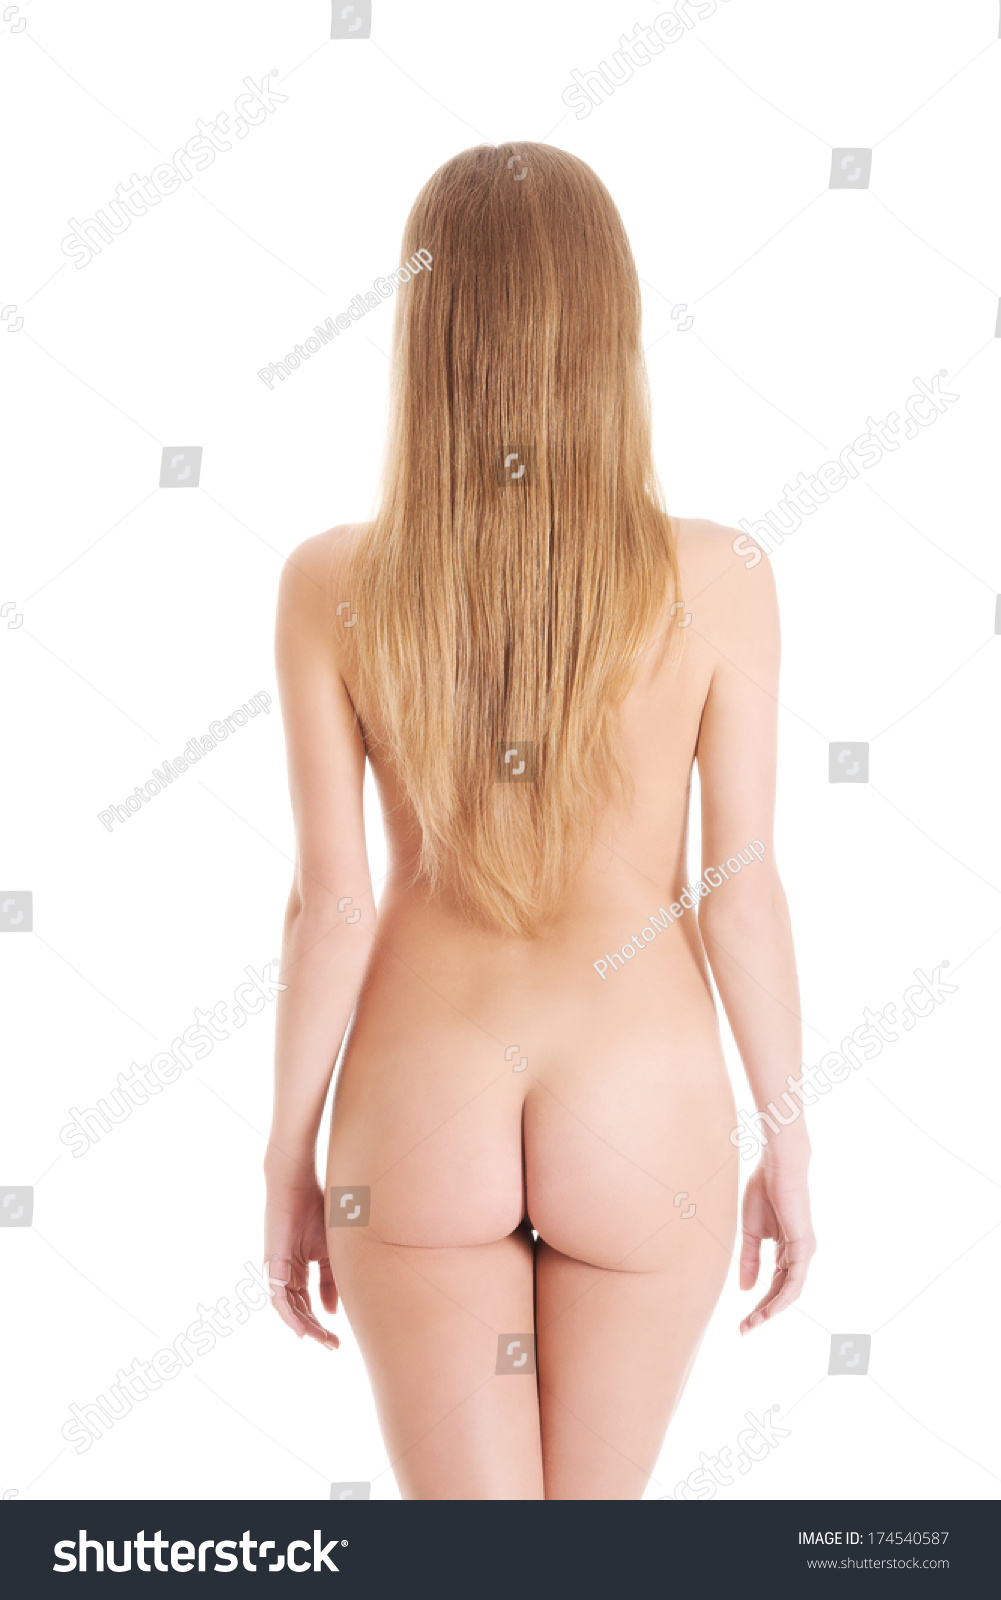 Naked ass female